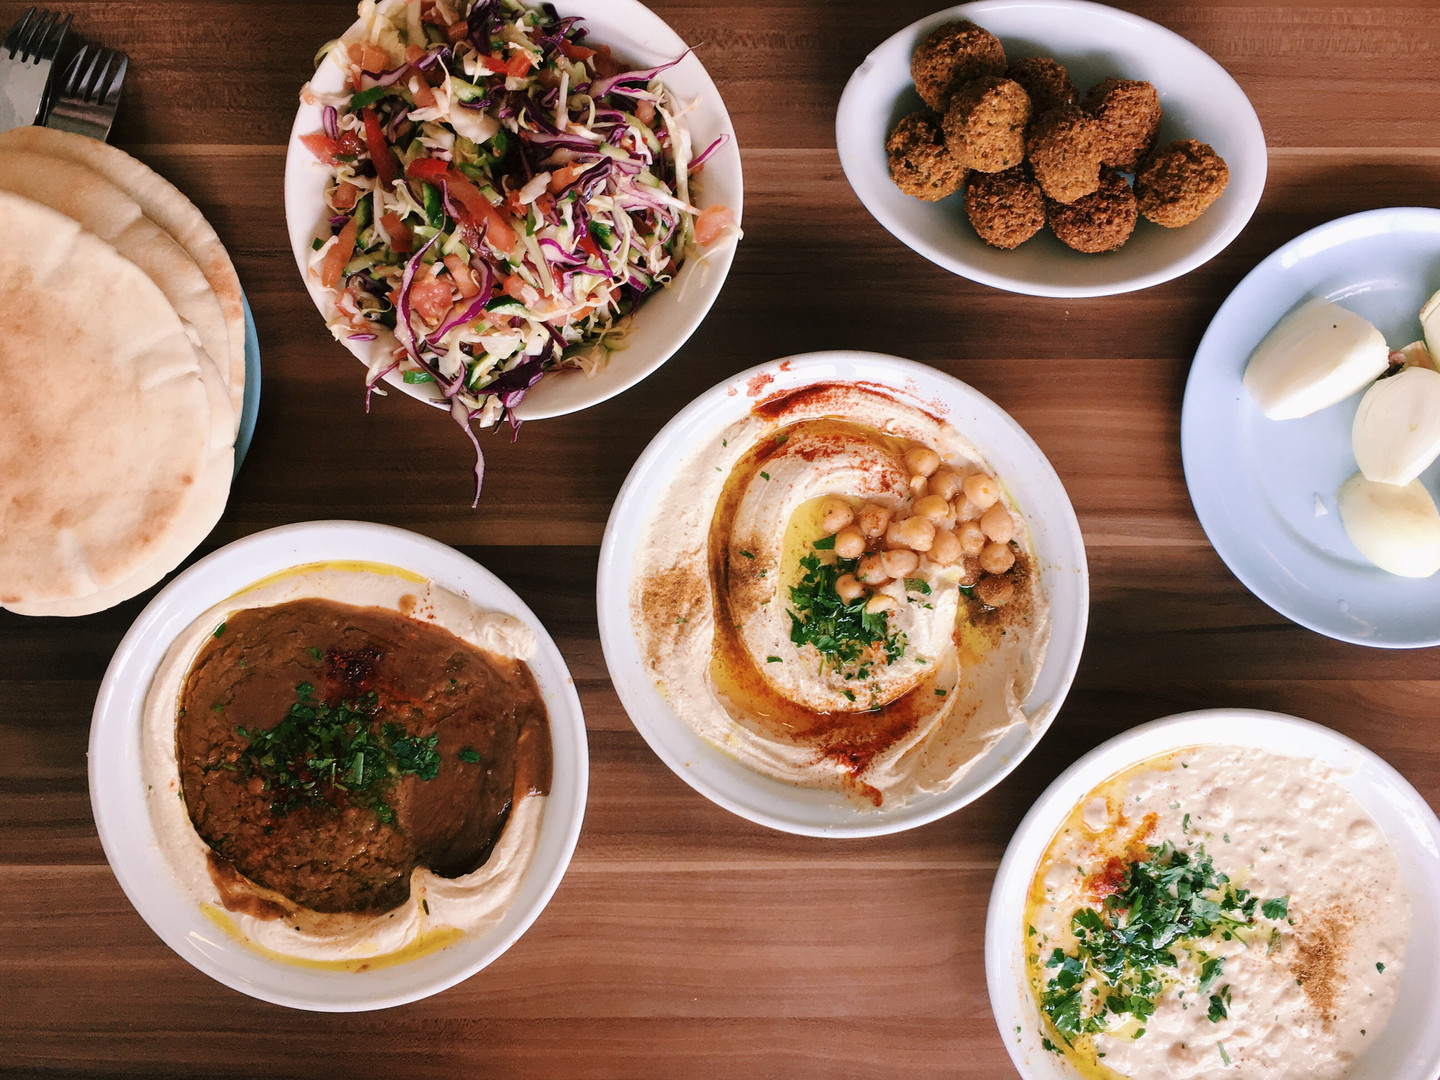 hummus-plates-view-from-above_t20_7JPAnN